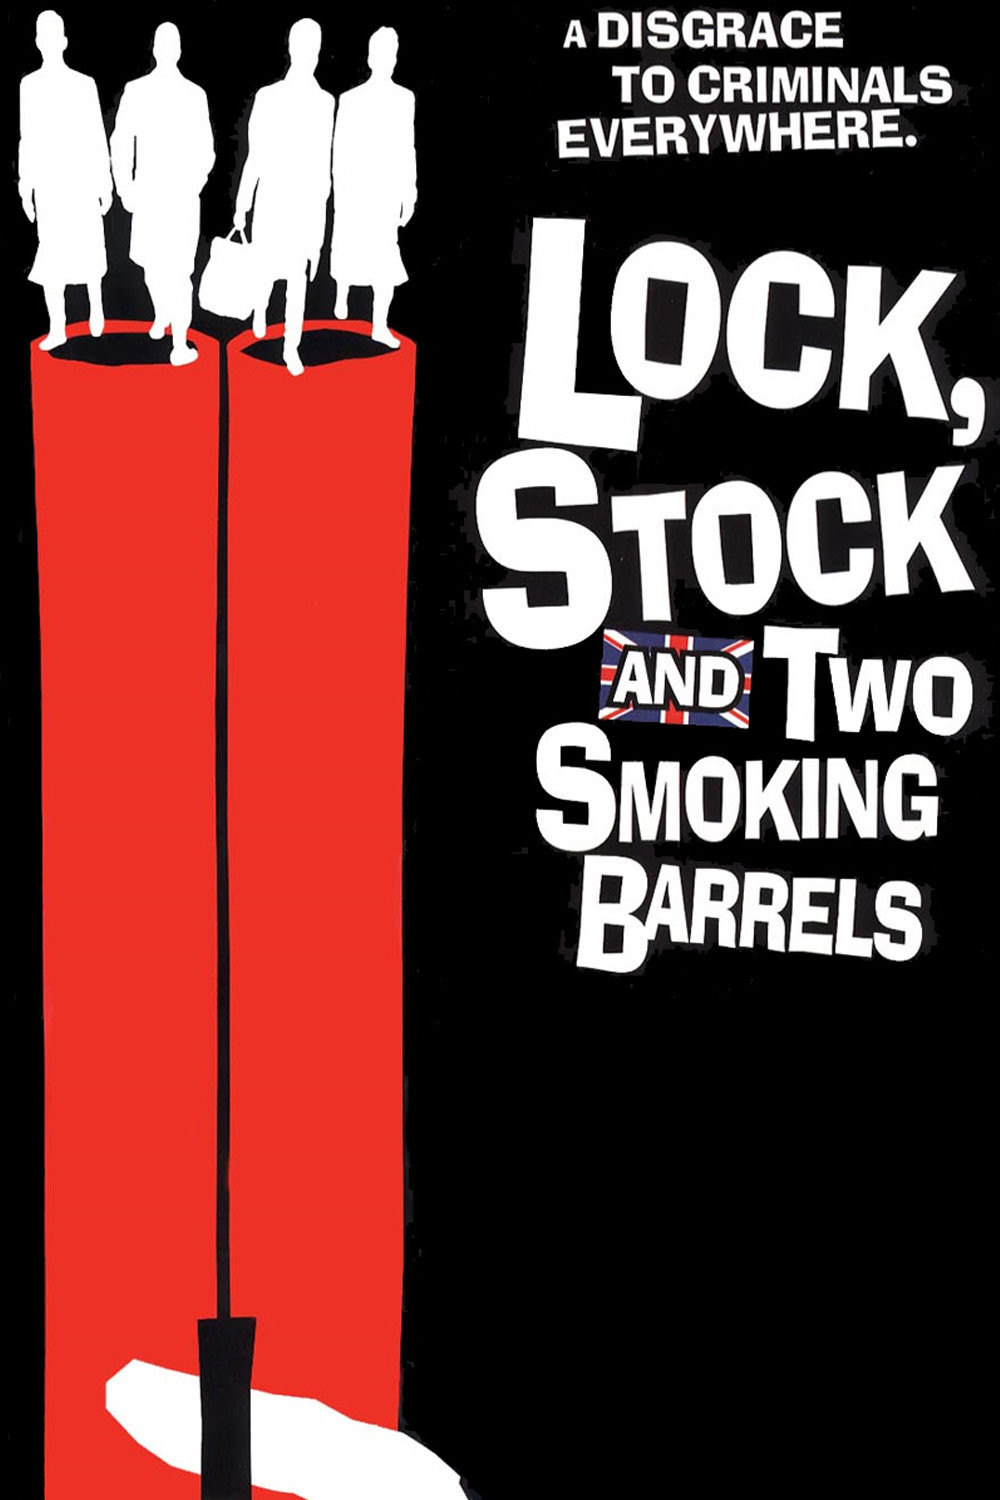 lock-stock-two-smoking-barrels